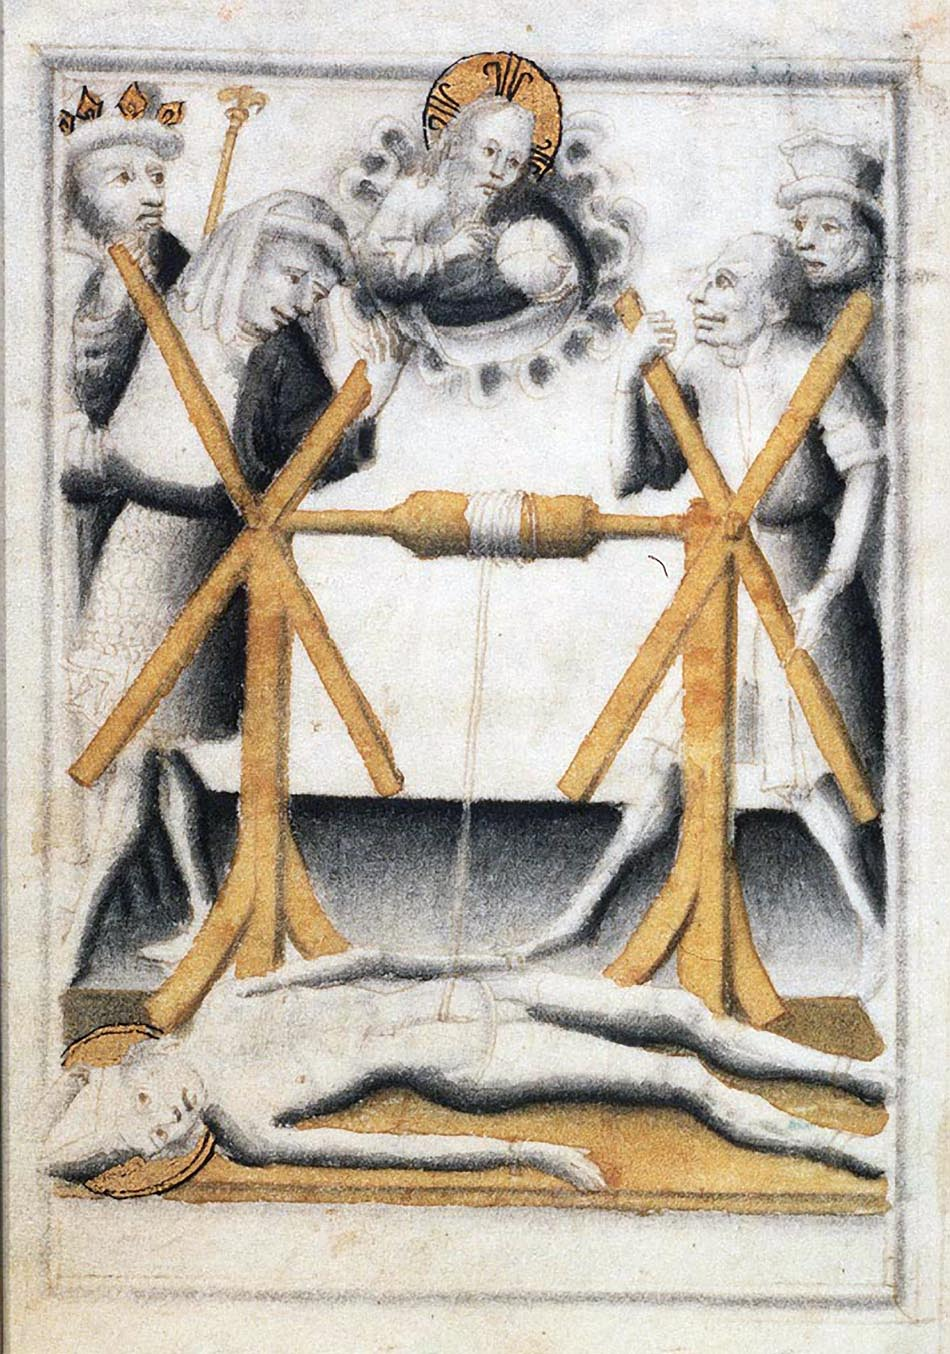 martyrdom-of-St-Erasmus-of-Formiae-his-bowels-are-wound-on-to-a-windlass-A.jpg